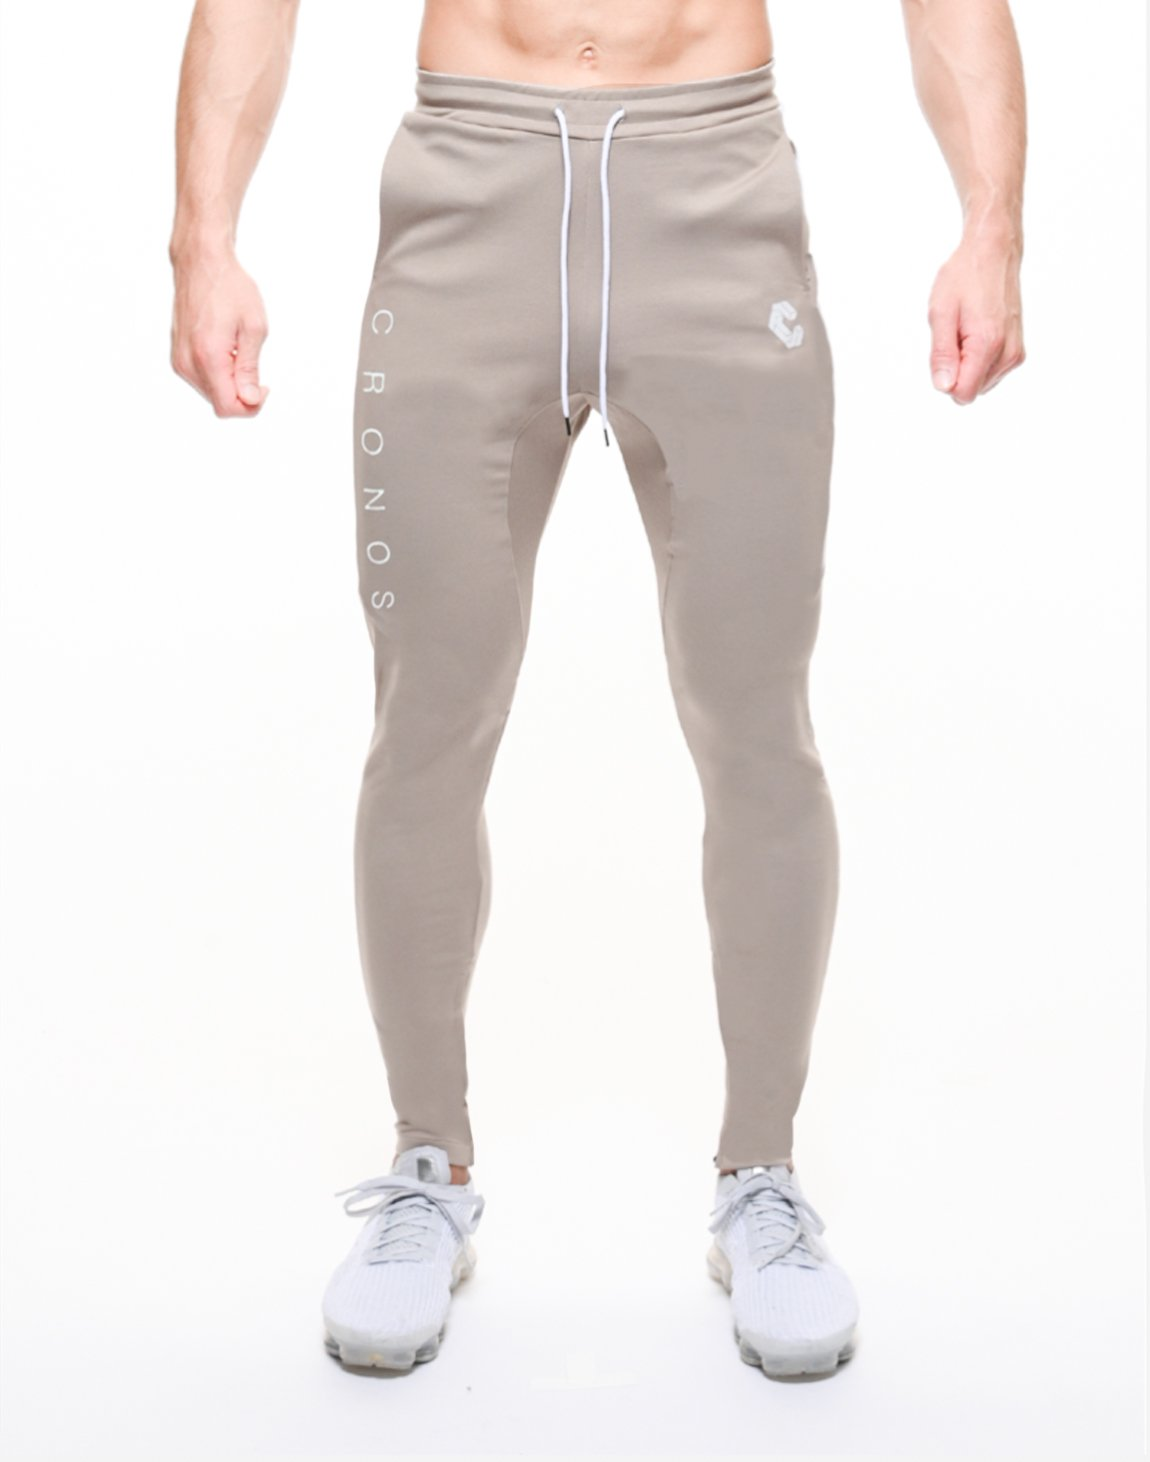 <img class='new_mark_img1' src='https://img.shop-pro.jp/img/new/icons1.gif' style='border:none;display:inline;margin:0px;padding:0px;width:auto;' />CRONOS SIDE FONT PANTS【BEIGE】